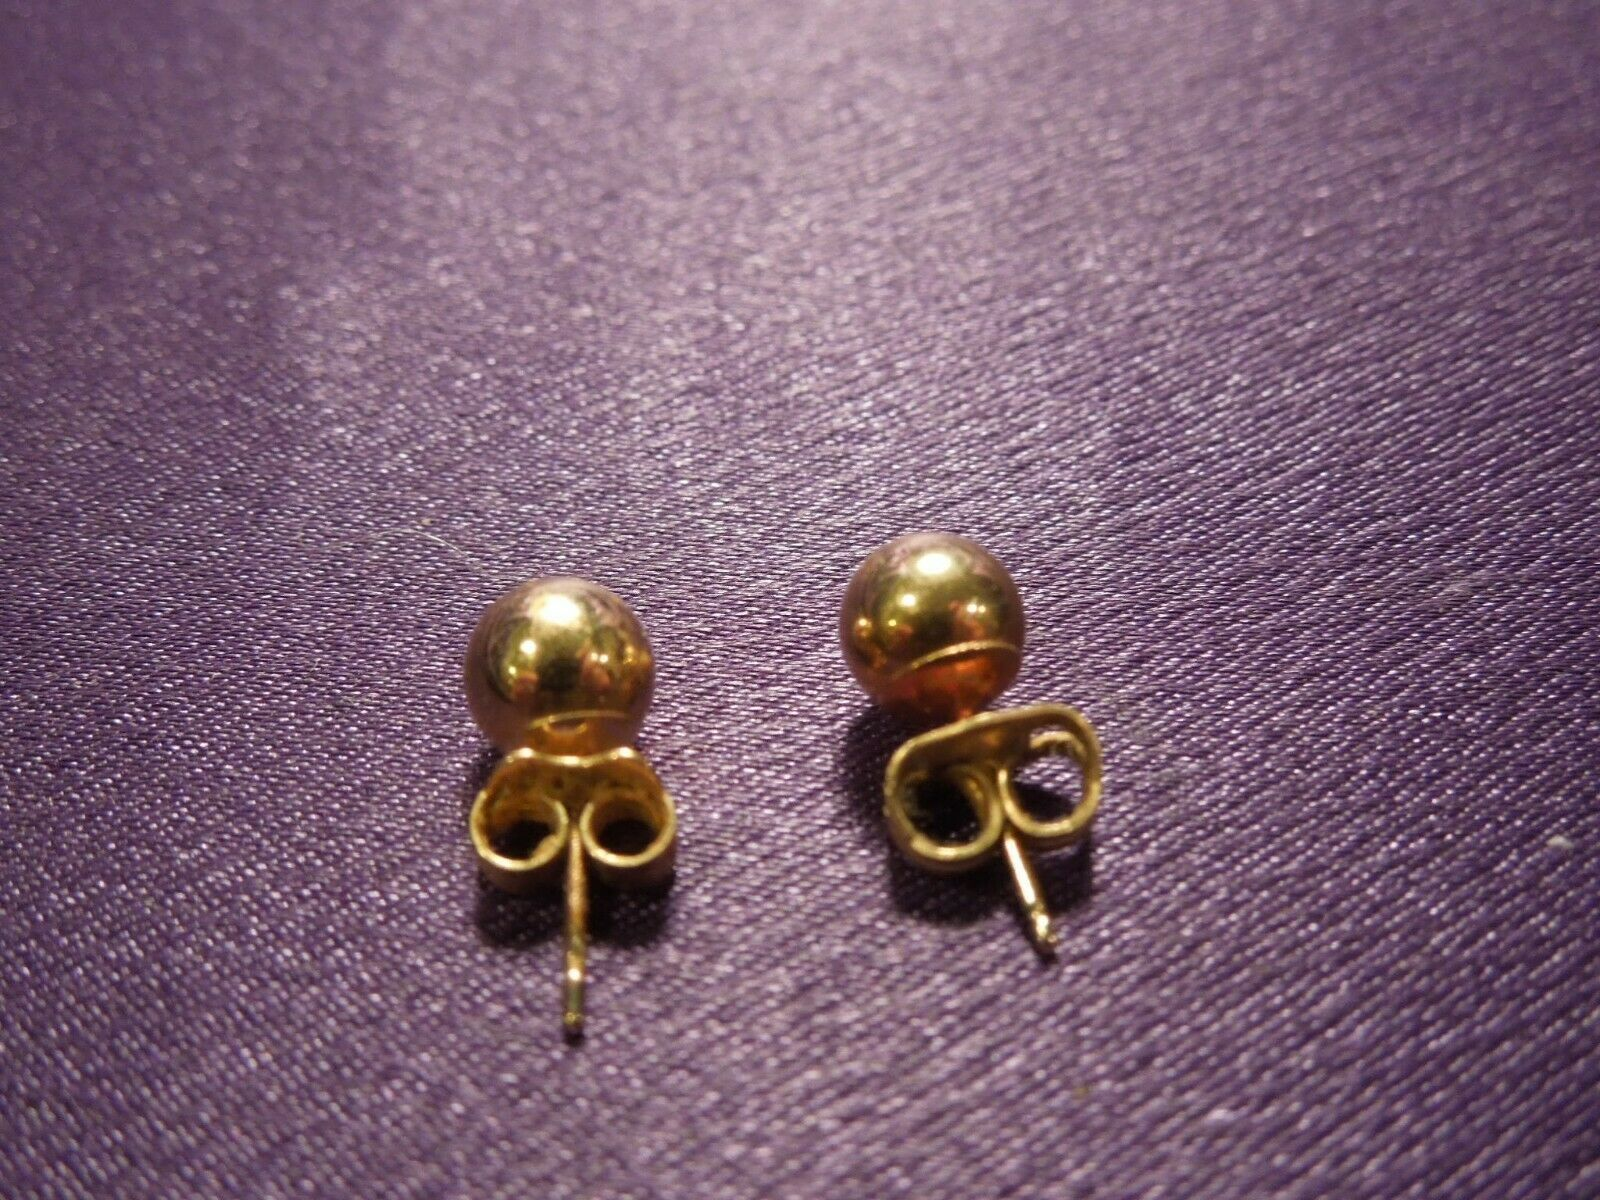 14K Gold Ball Stud Earring Pair image 3